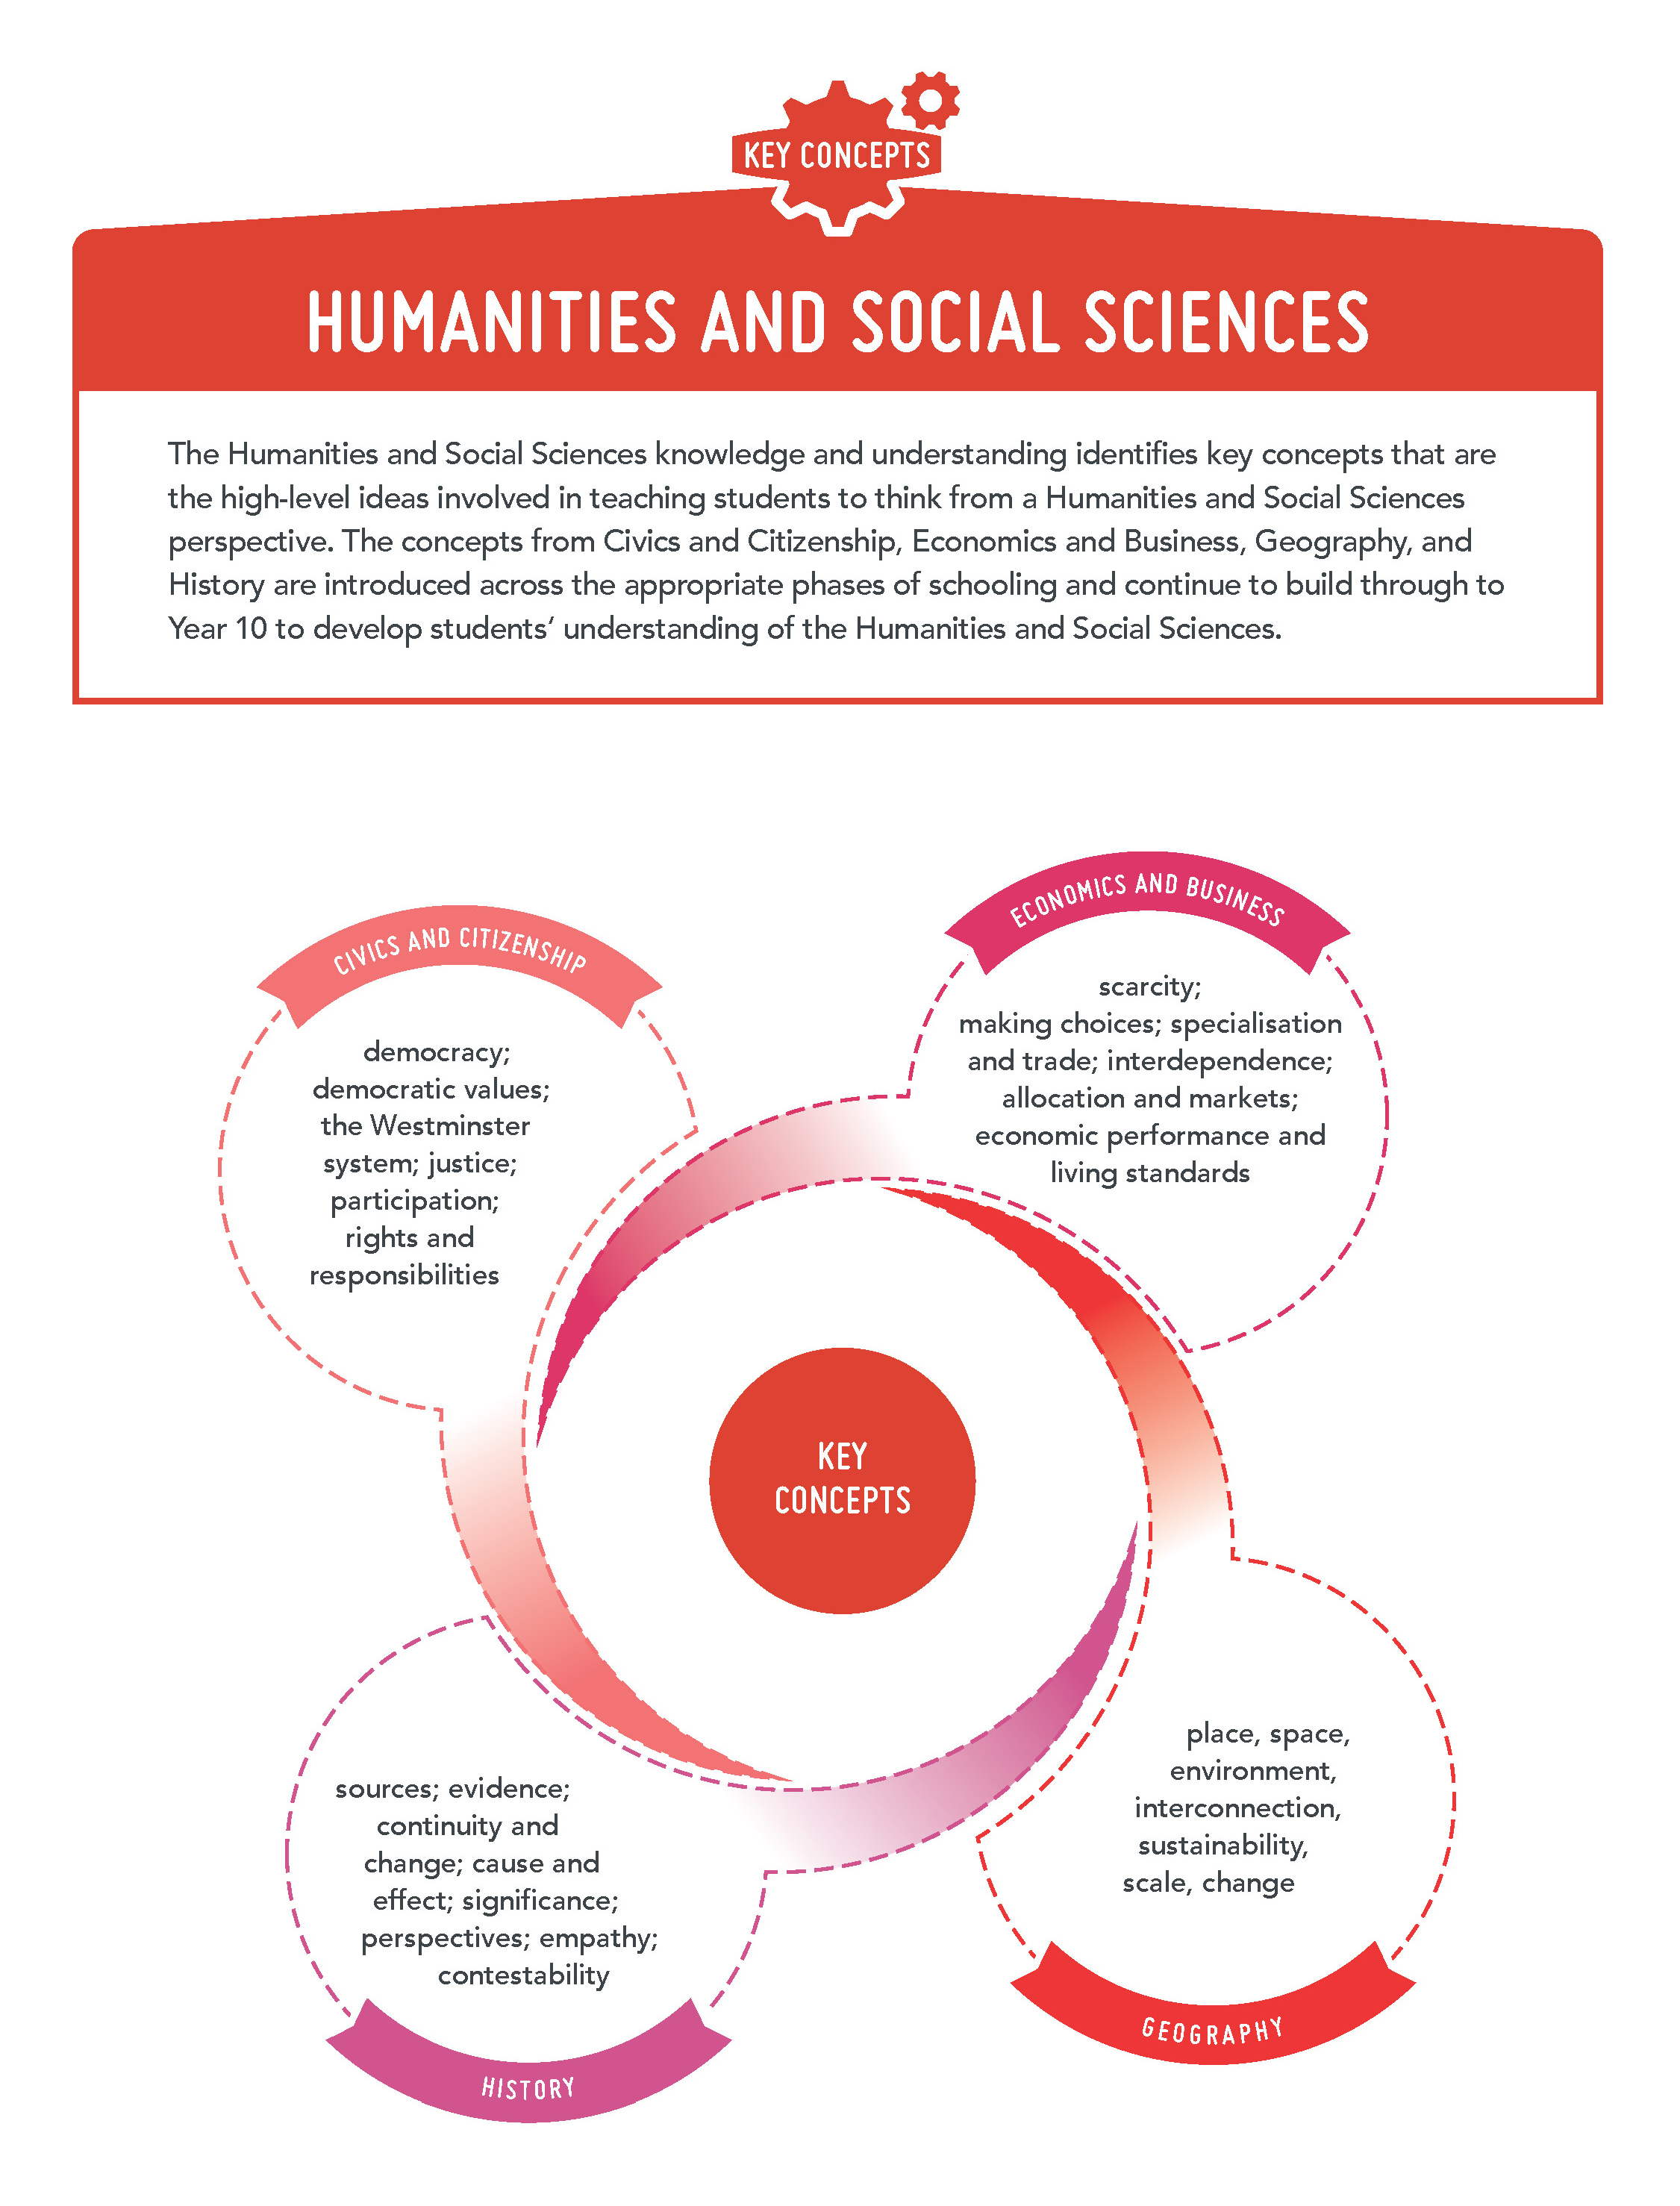 Humanities and Social Sciences - Key concepts